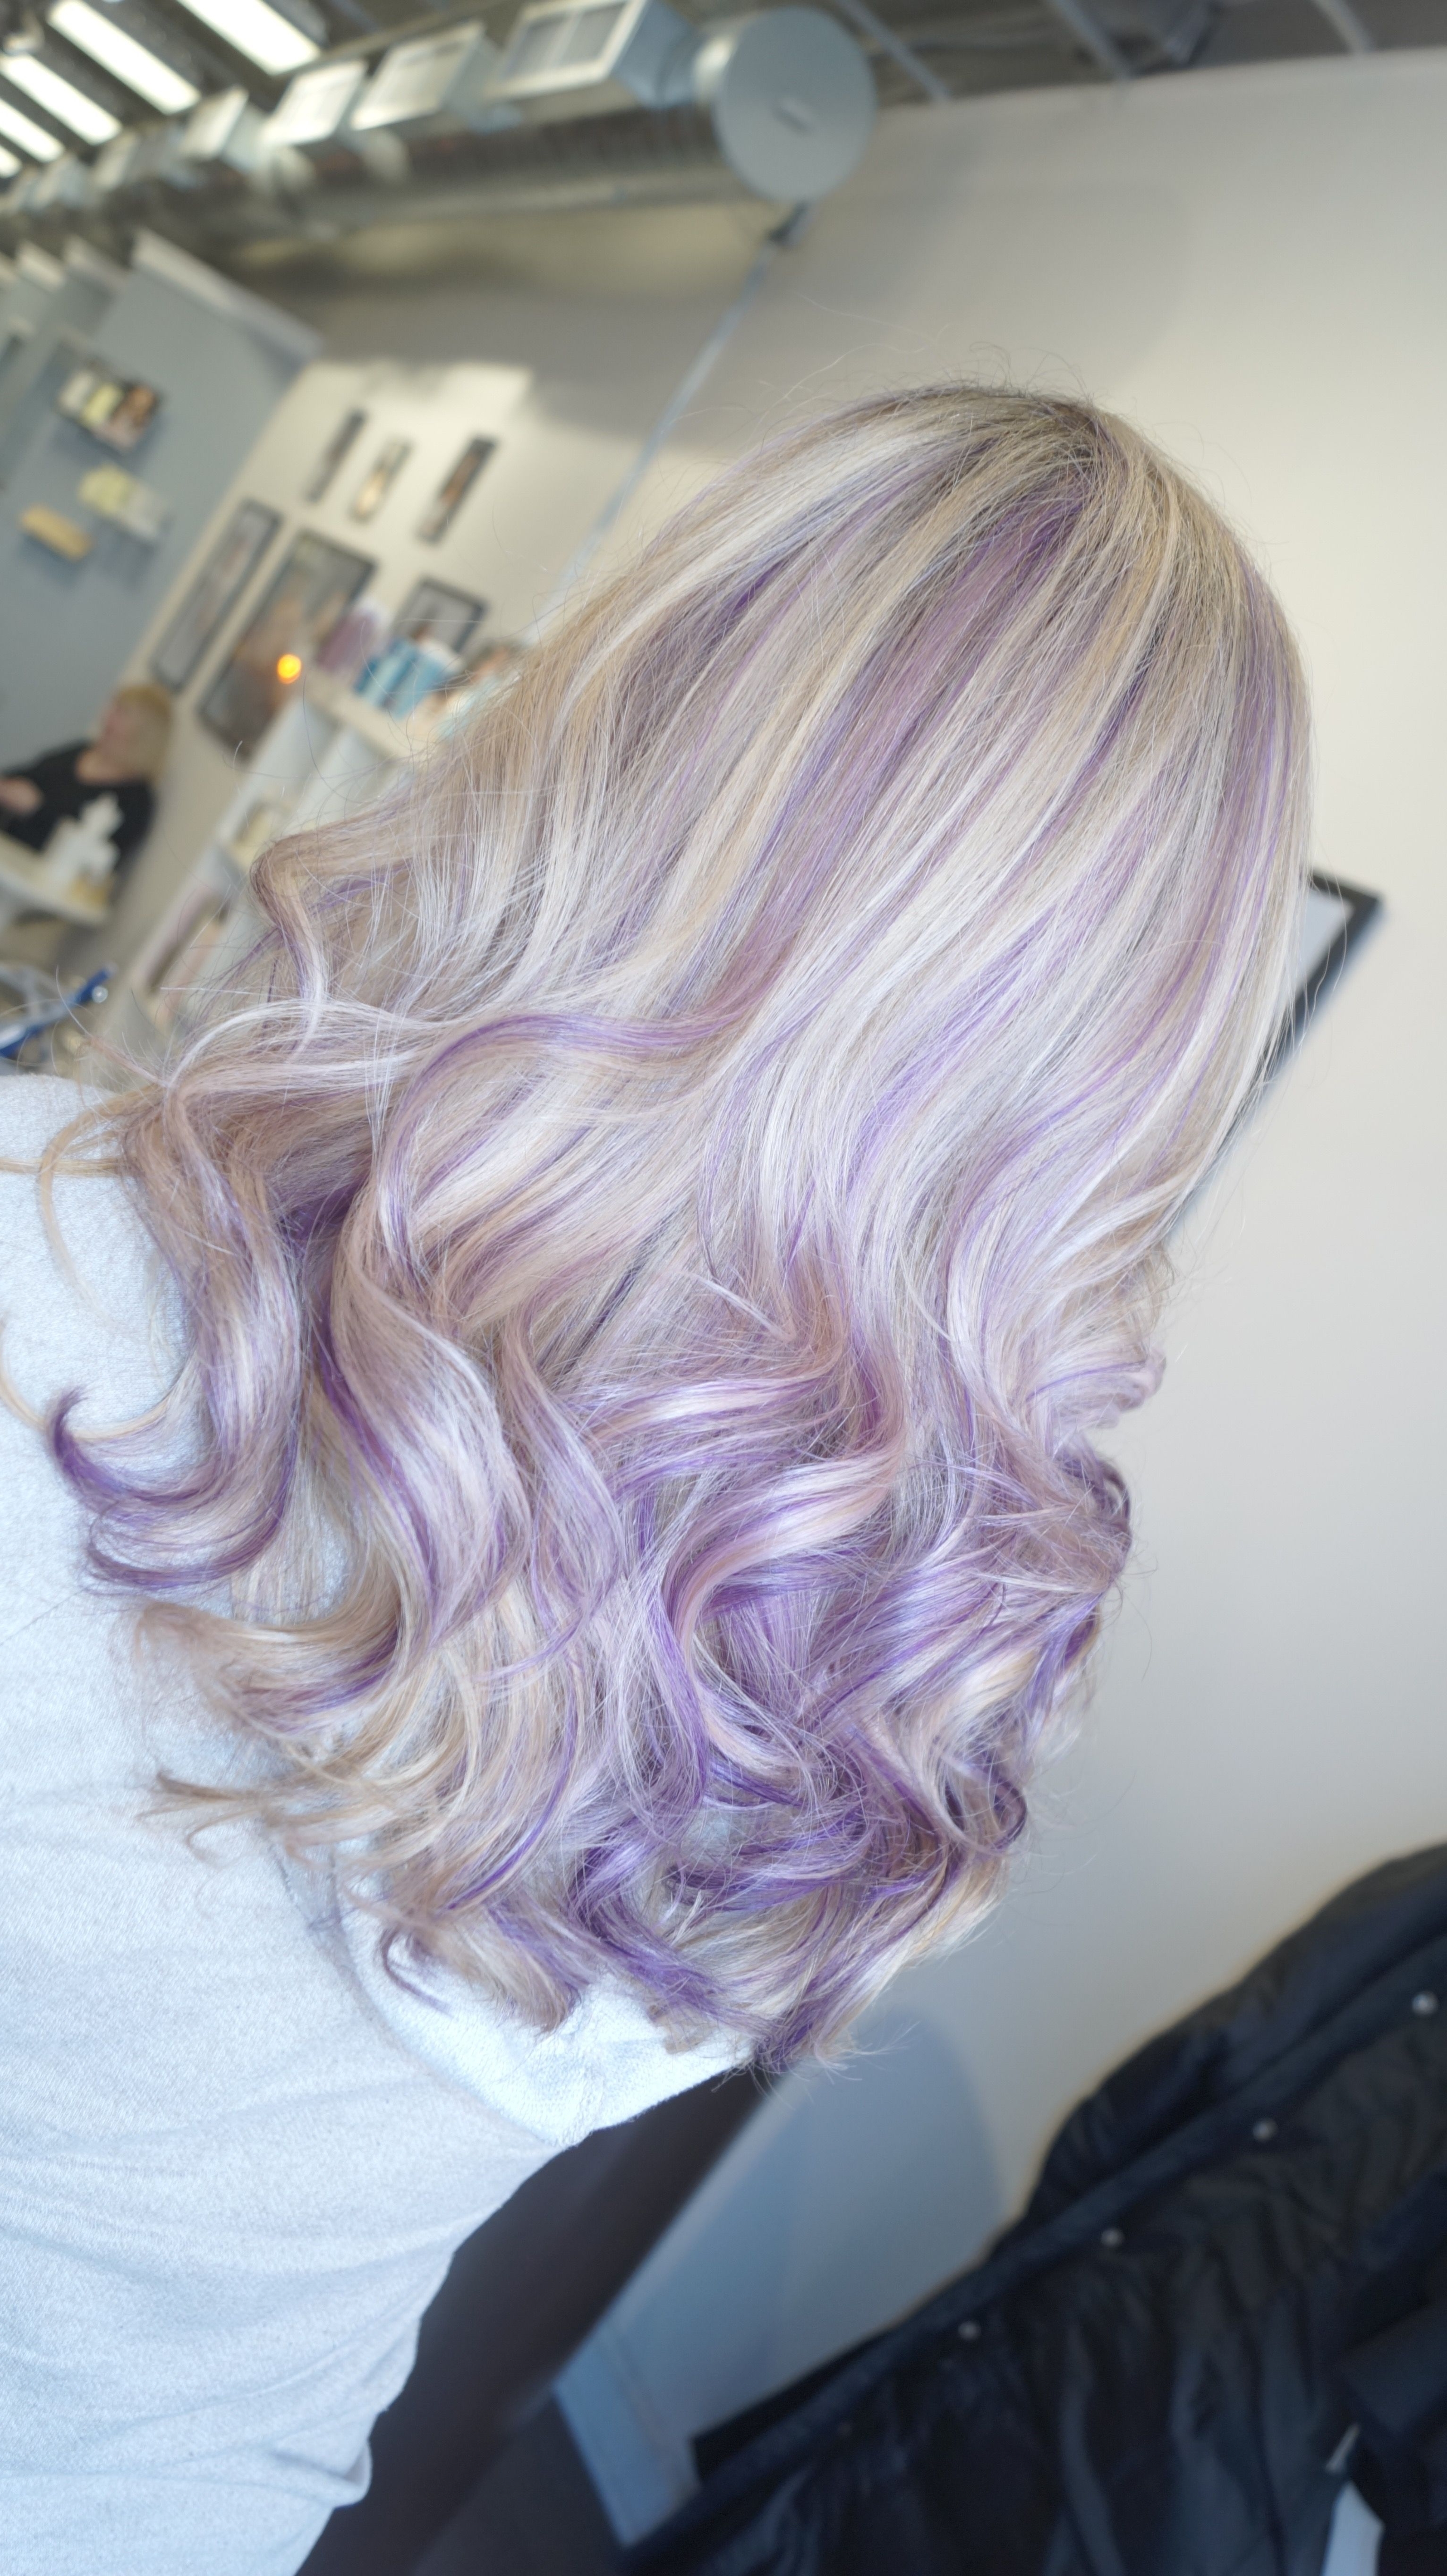 Recent Voluminous Platinum And Purple Curls Blonde Hairstyles Inside Lavender Highlights With Blonde Hair (View 17 of 20)